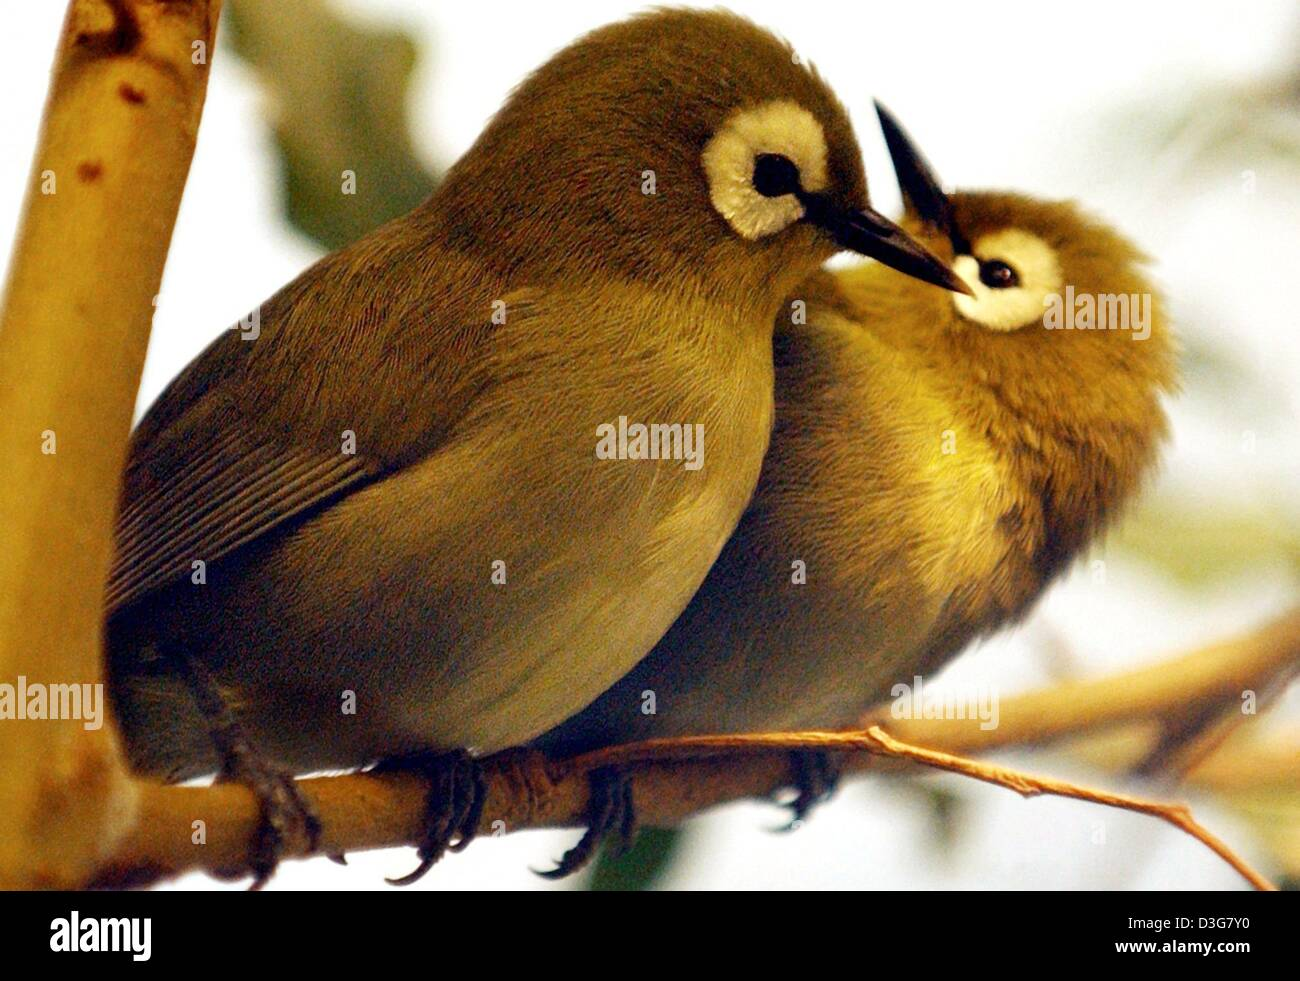 (dpa) - Two Kikuyu white eyes are cleaning each other's plumage, in the zoo in Frankfurt, Germany, 24 October - Stock Image